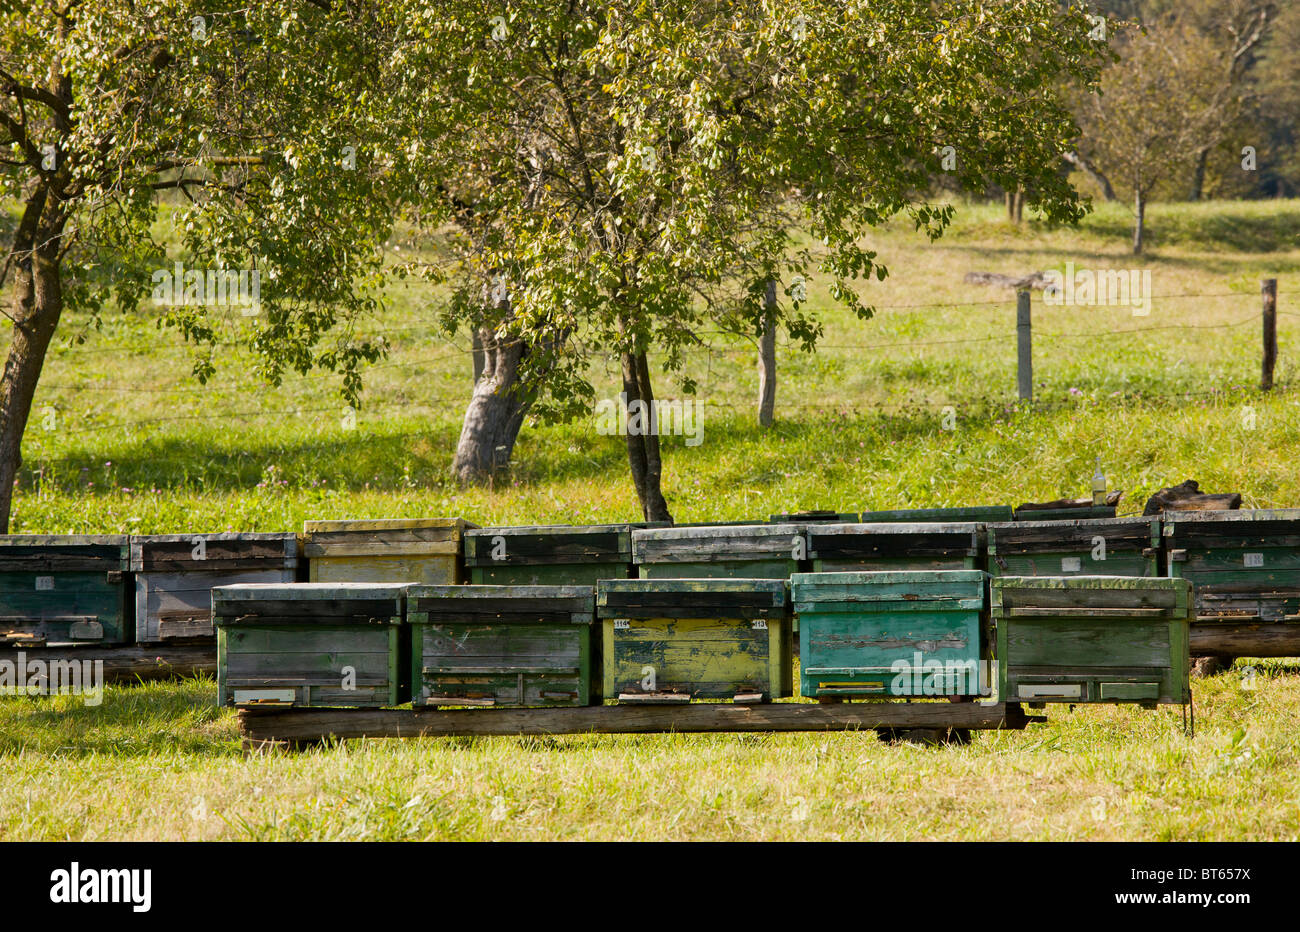 Bee-hives in orchard in the old saxon village of Crit, Transylvania, Romania - Stock Image